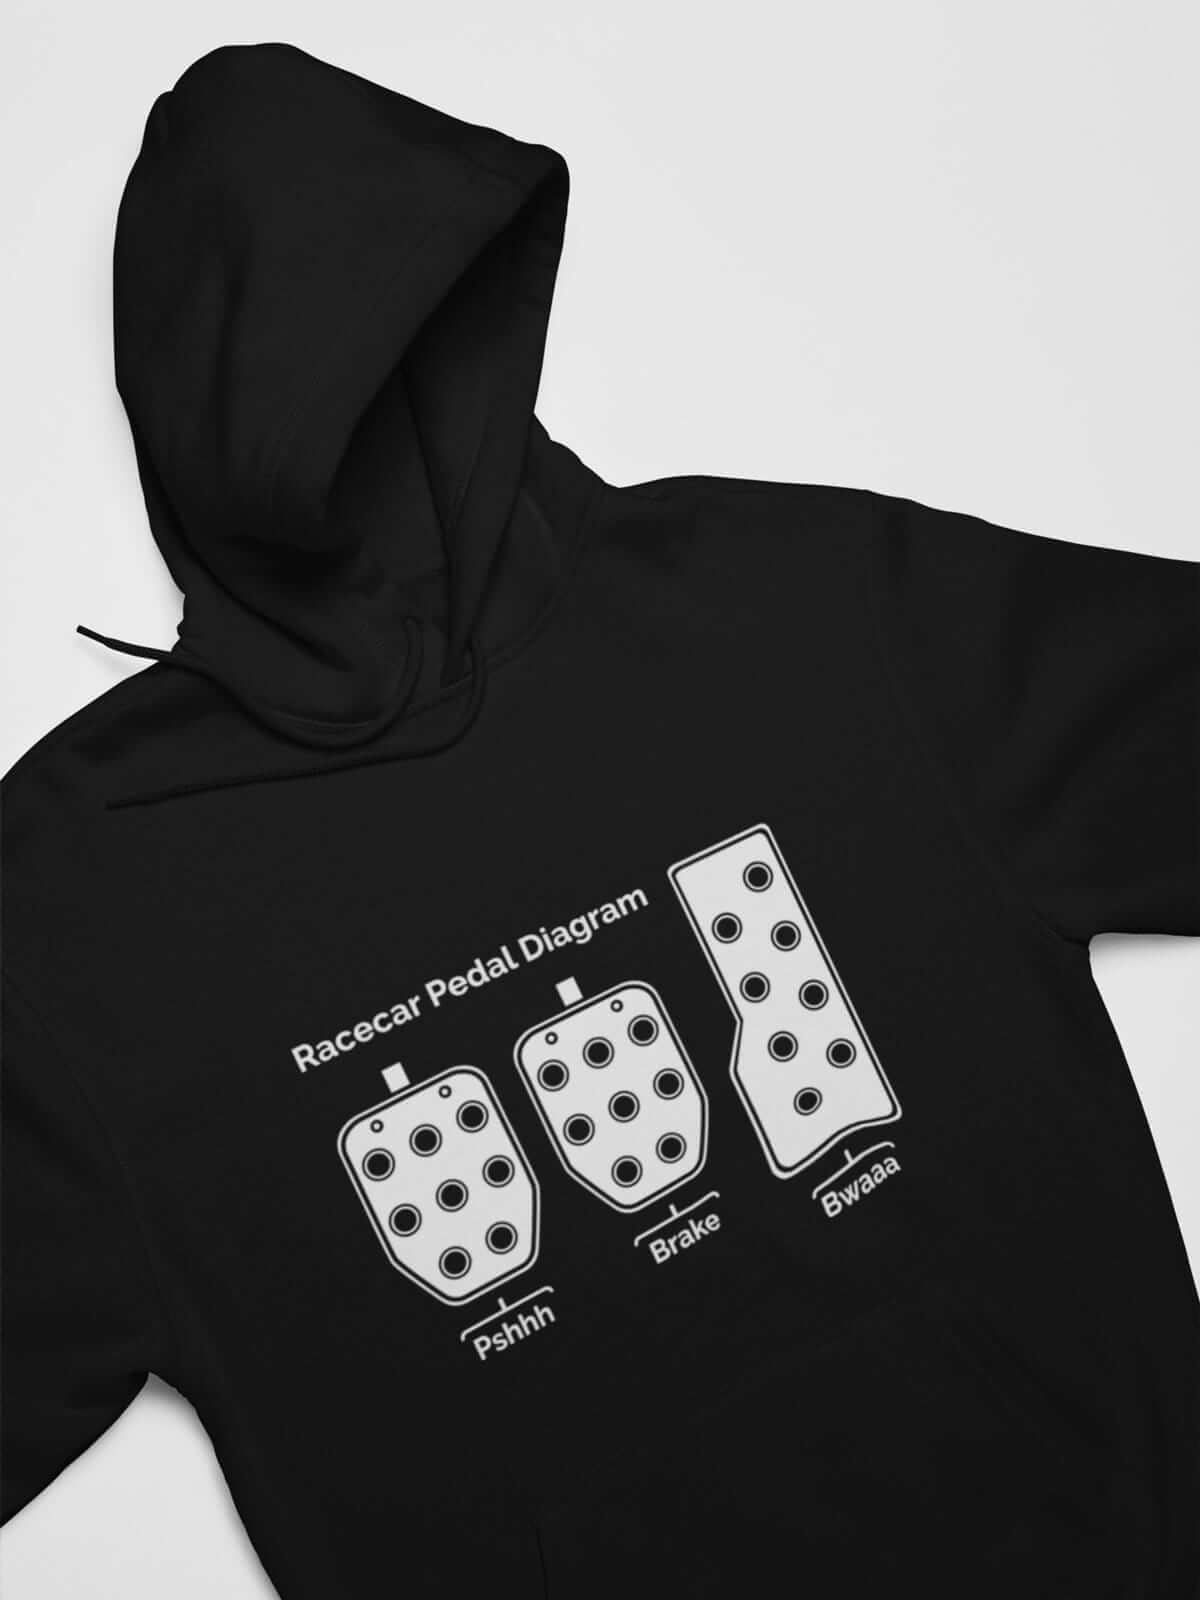 funny car hoodie in black, 3 pedals, car guys, car lovers, car enthusiasts